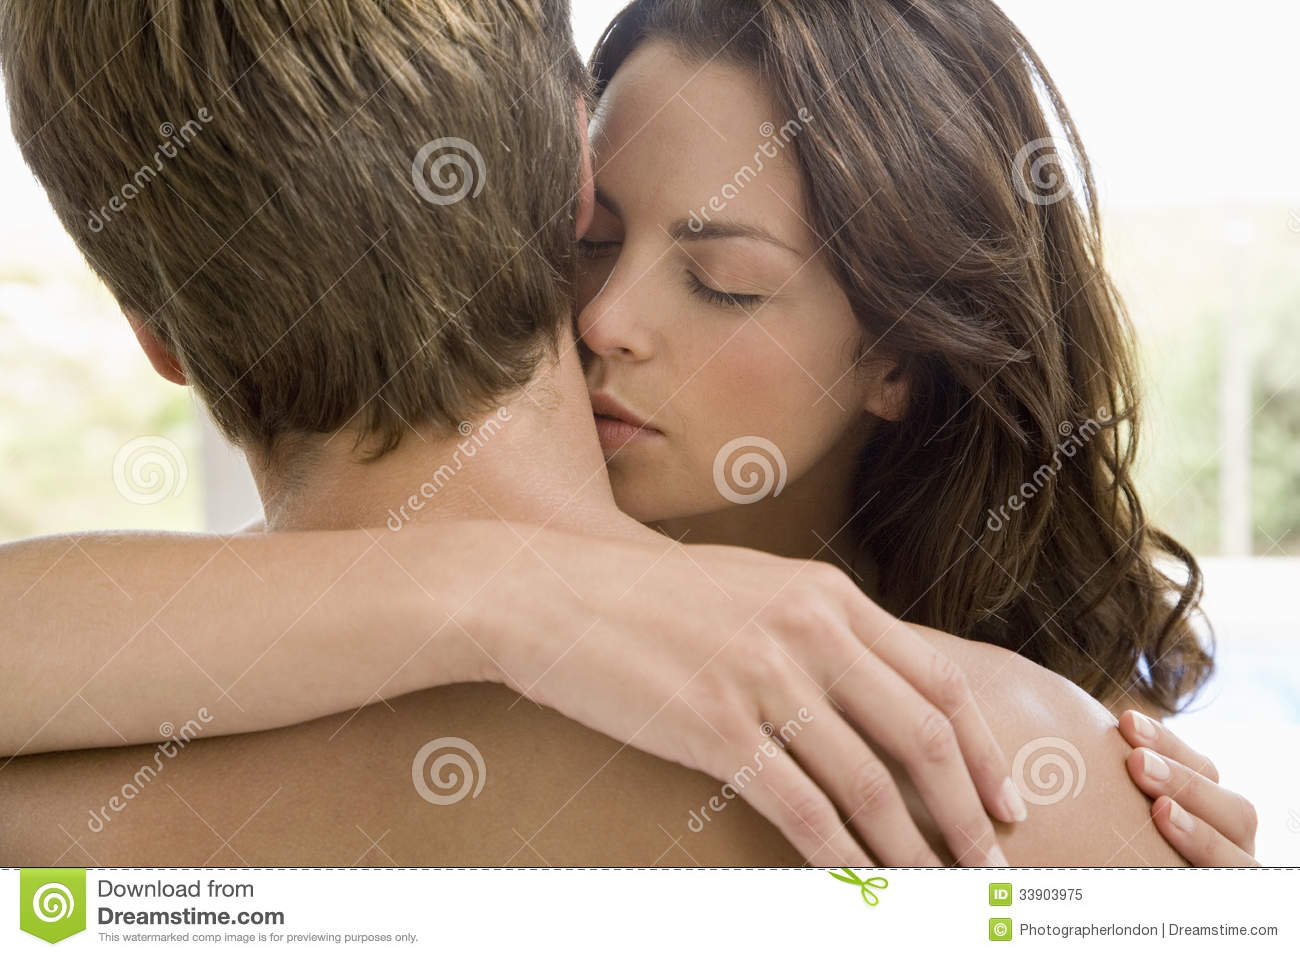 Woman Kissing On Man's Neck Royalty Free Stock Photo - Image: 33903975